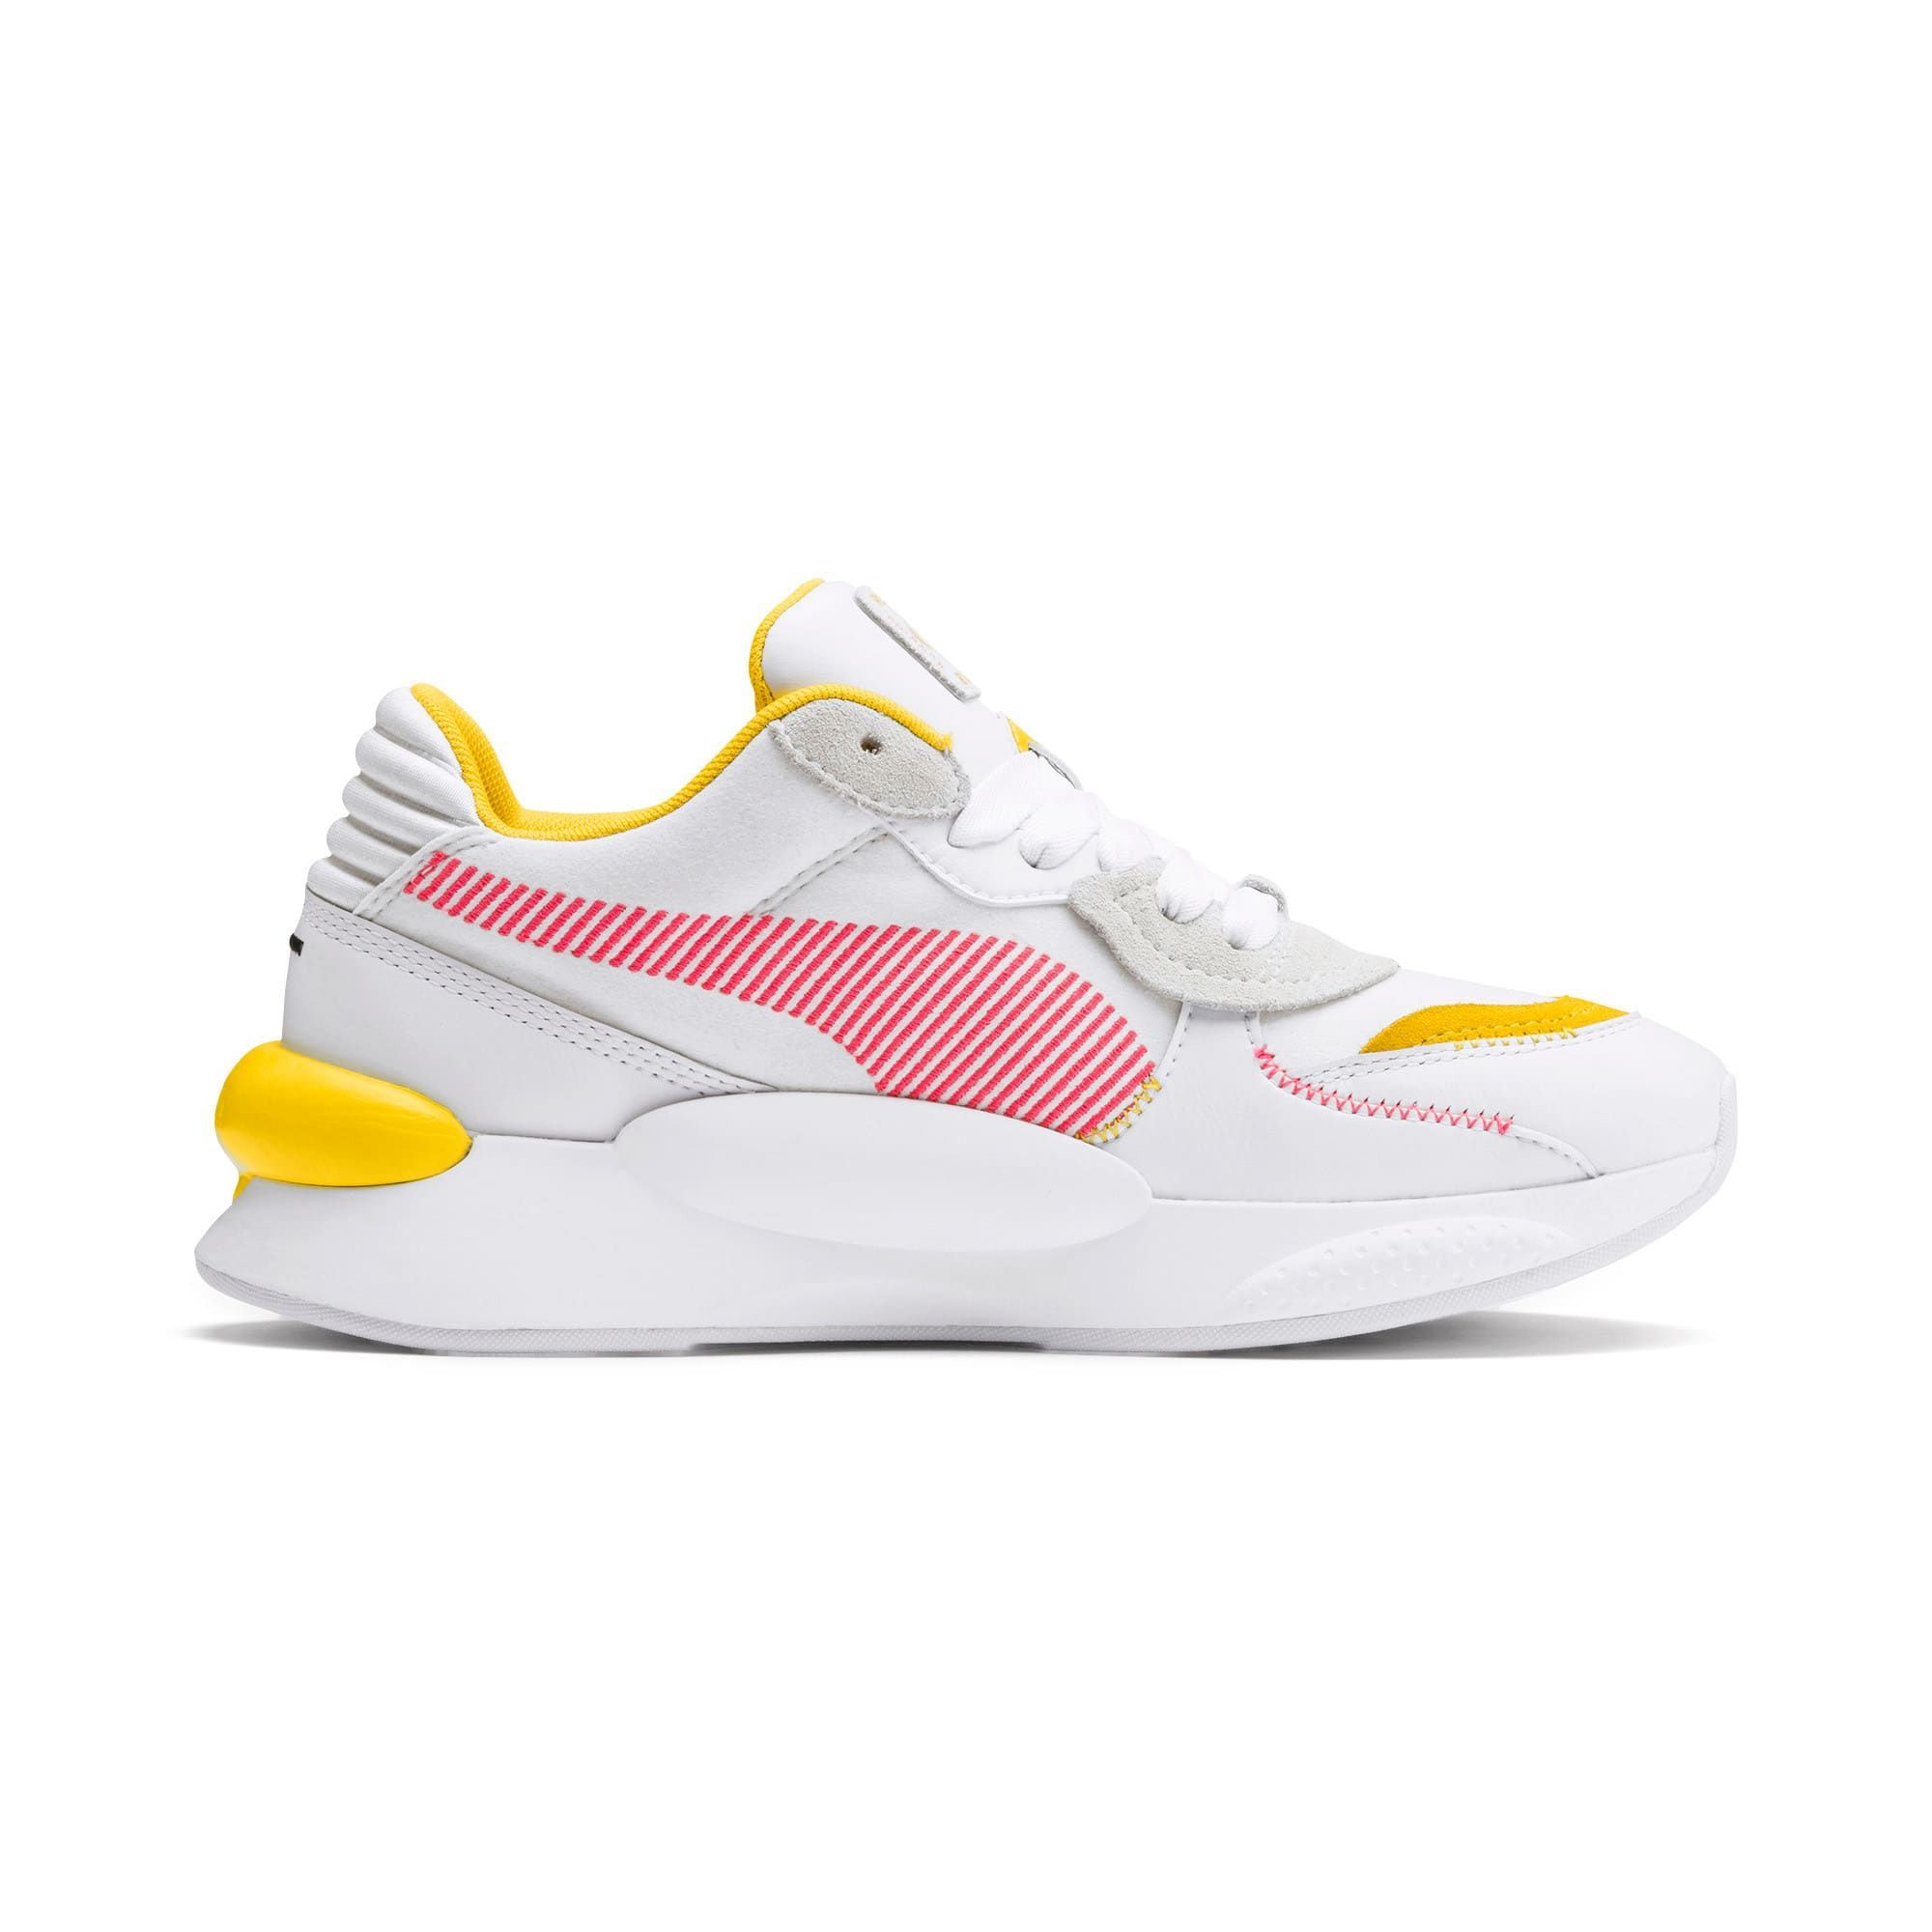 PUMA RS 9.8 Proto Women's Trainers in